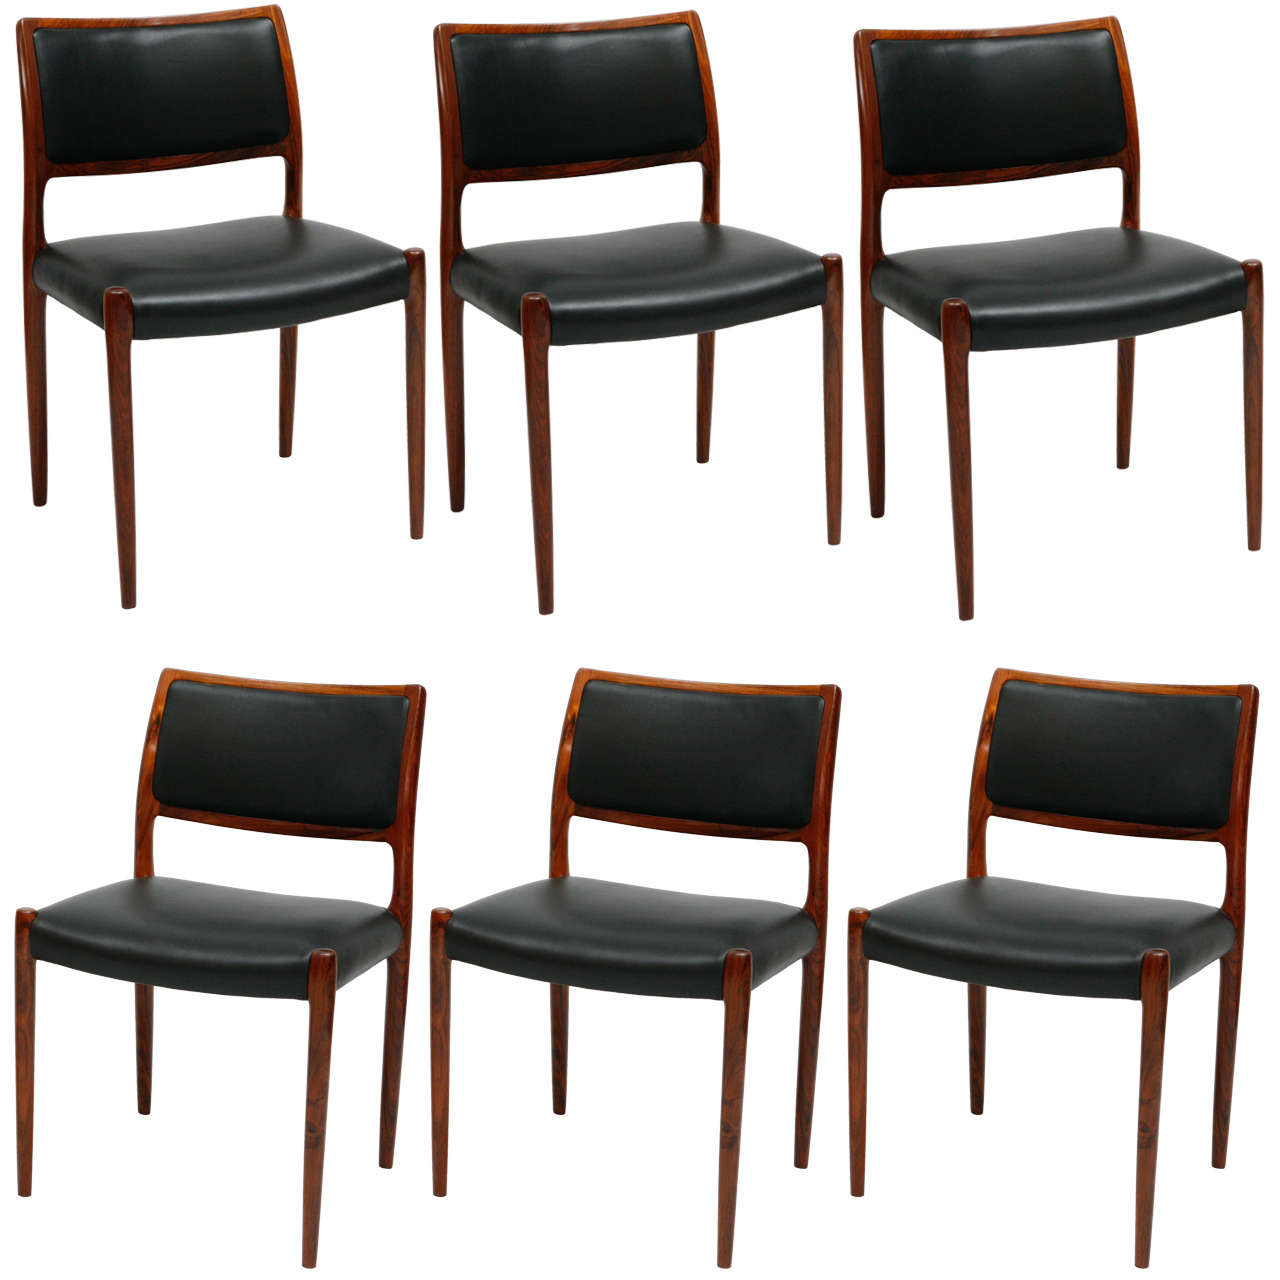 Set of 6 rosewood niels moller dining chairs for sale at 1stdibs - Rosewood dining room furniture ...